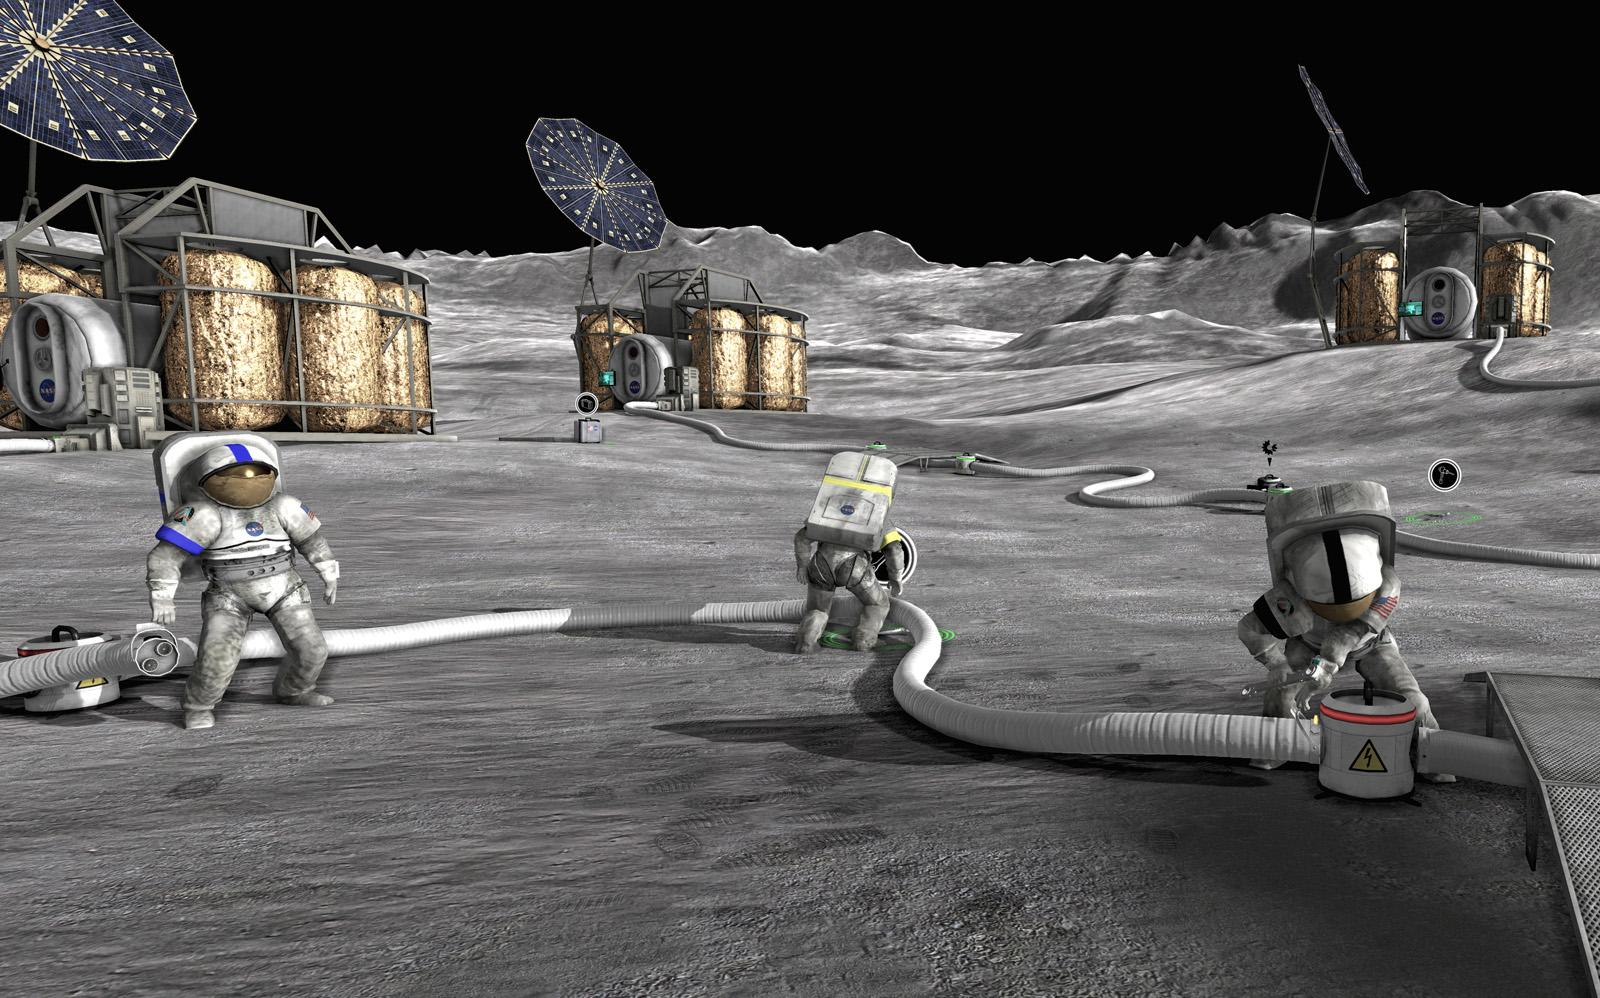 OVERVIEW NASA has once again landed on the lunar surface with the goal of colonization, research, and further exploration.